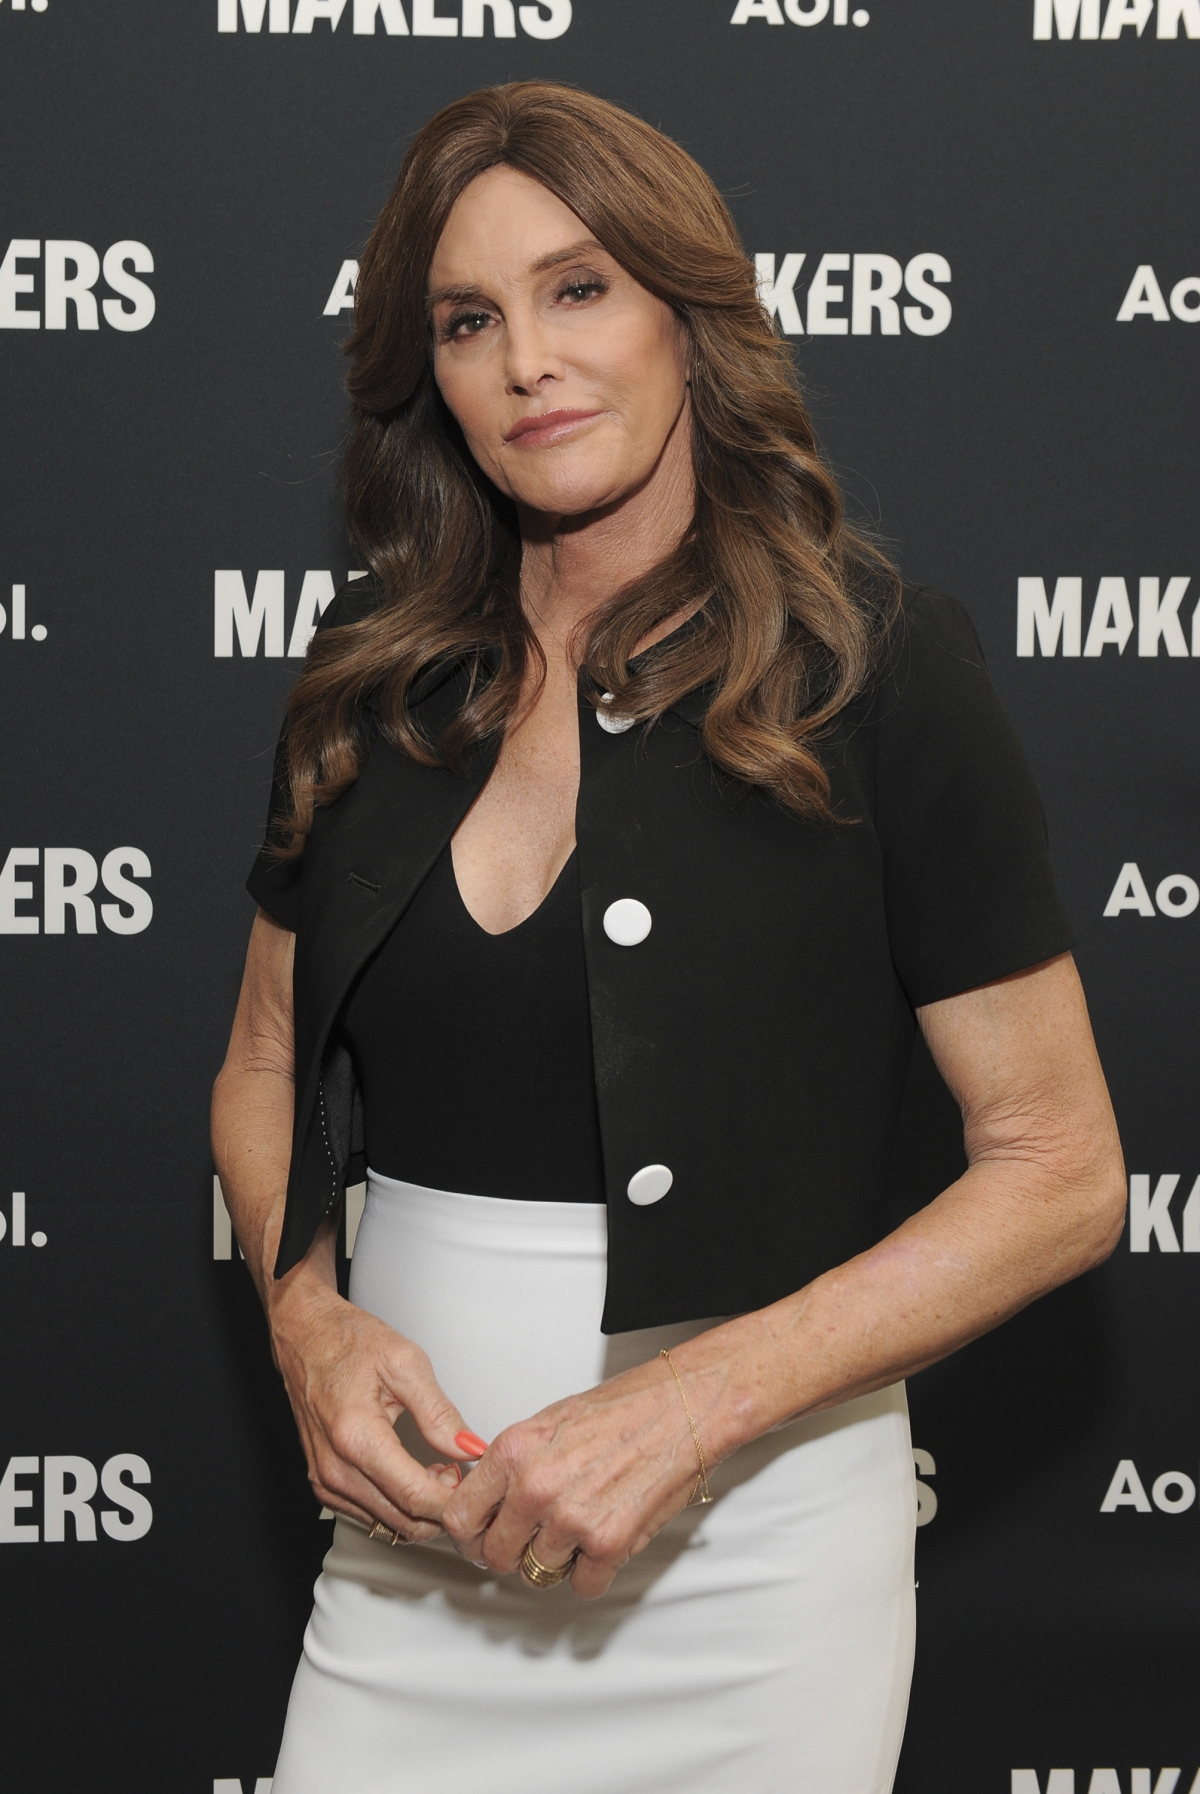 caitlyn jenner - photo #6